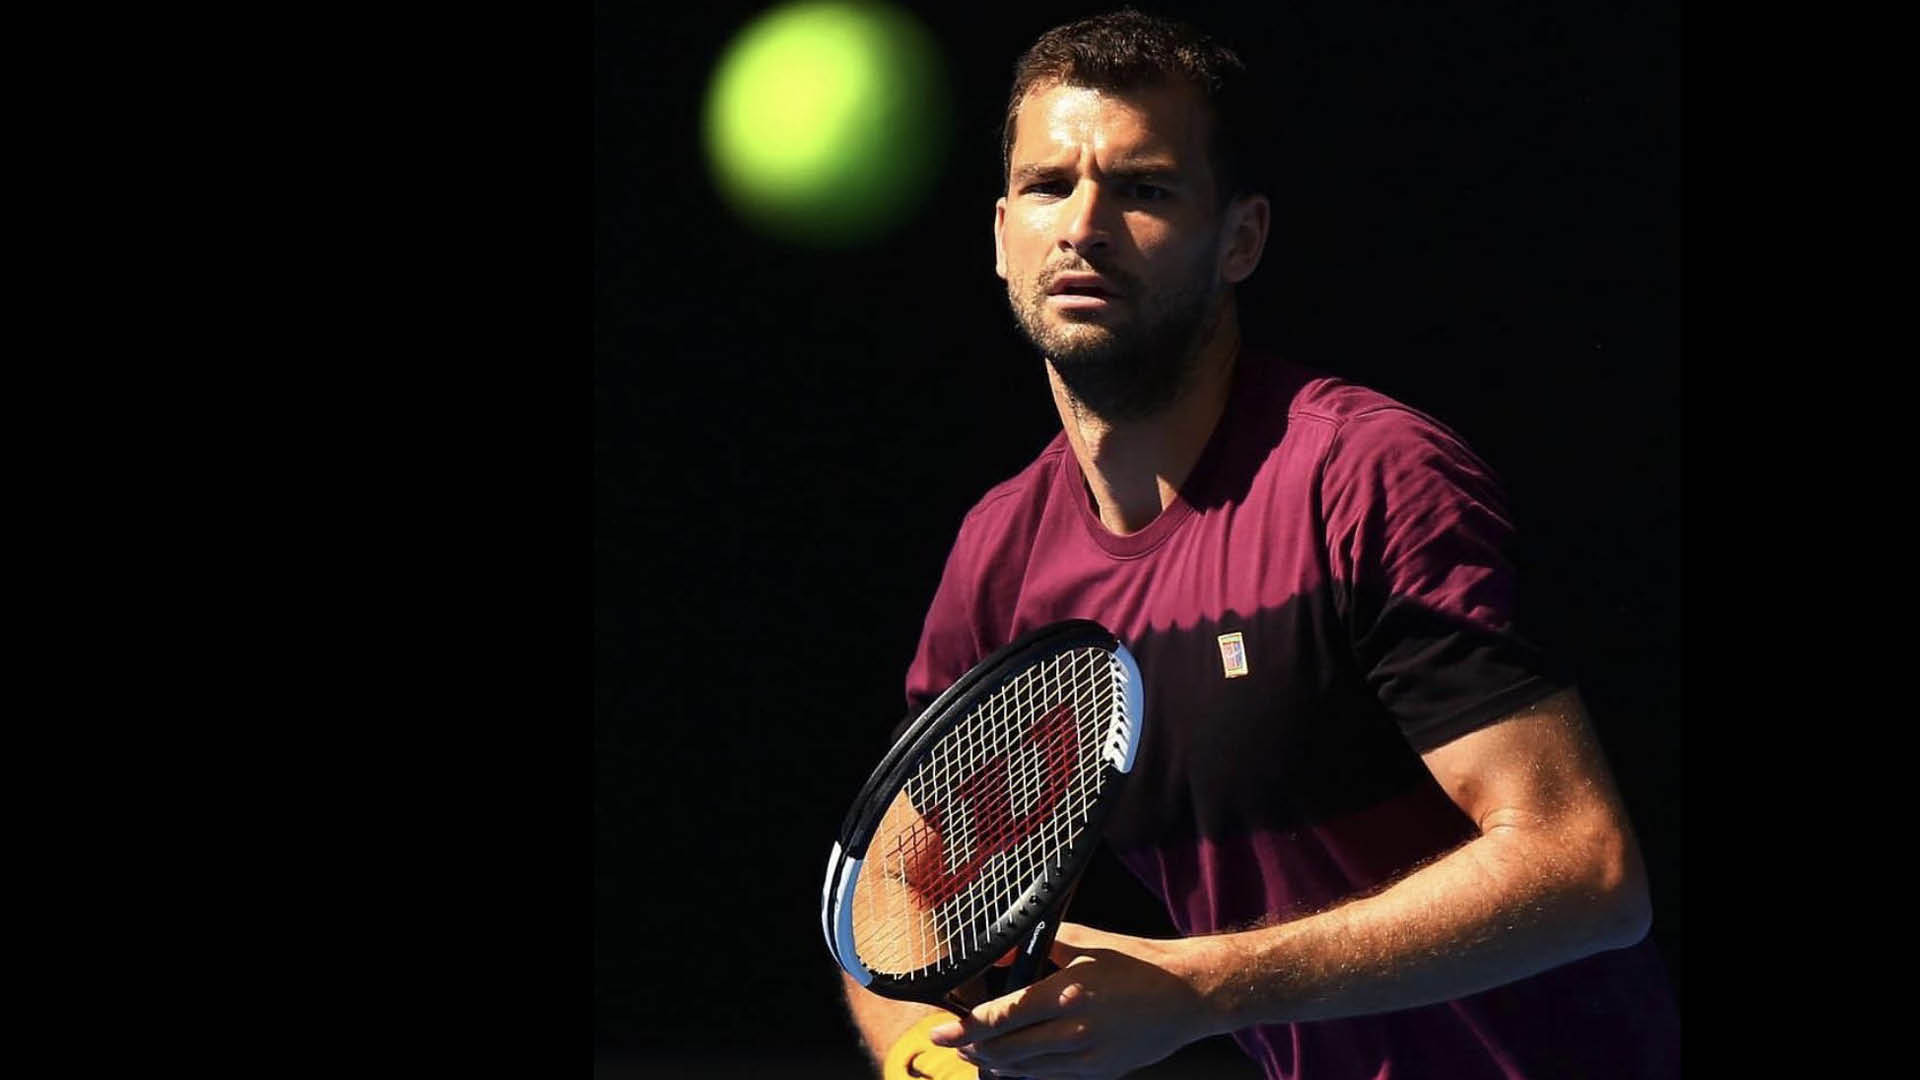 Dimitrov, the highest-profile player to have contracted the virus announced his result at the end of a week when the US Open announced its opening dates. (Picture courtesy: Grigor Dimitrov/Twitter)